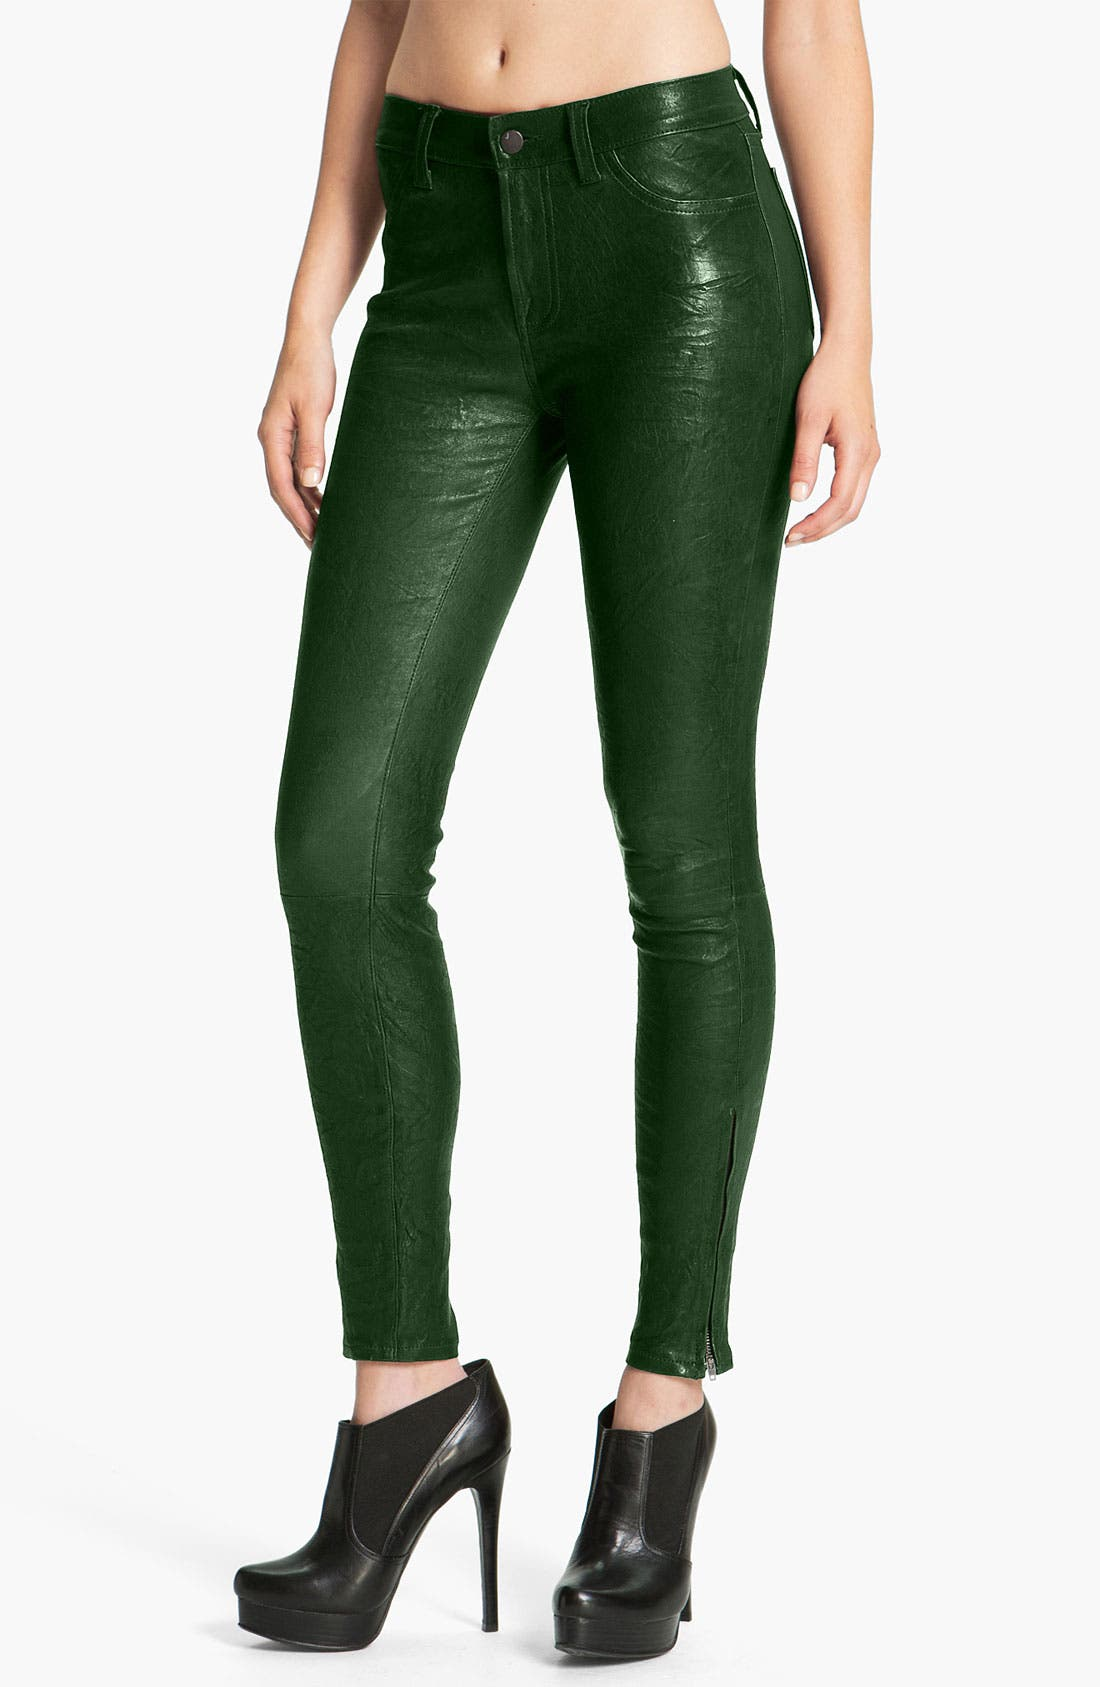 '8001' Lambskin Leather Pants,                             Main thumbnail 1, color,                             Forest